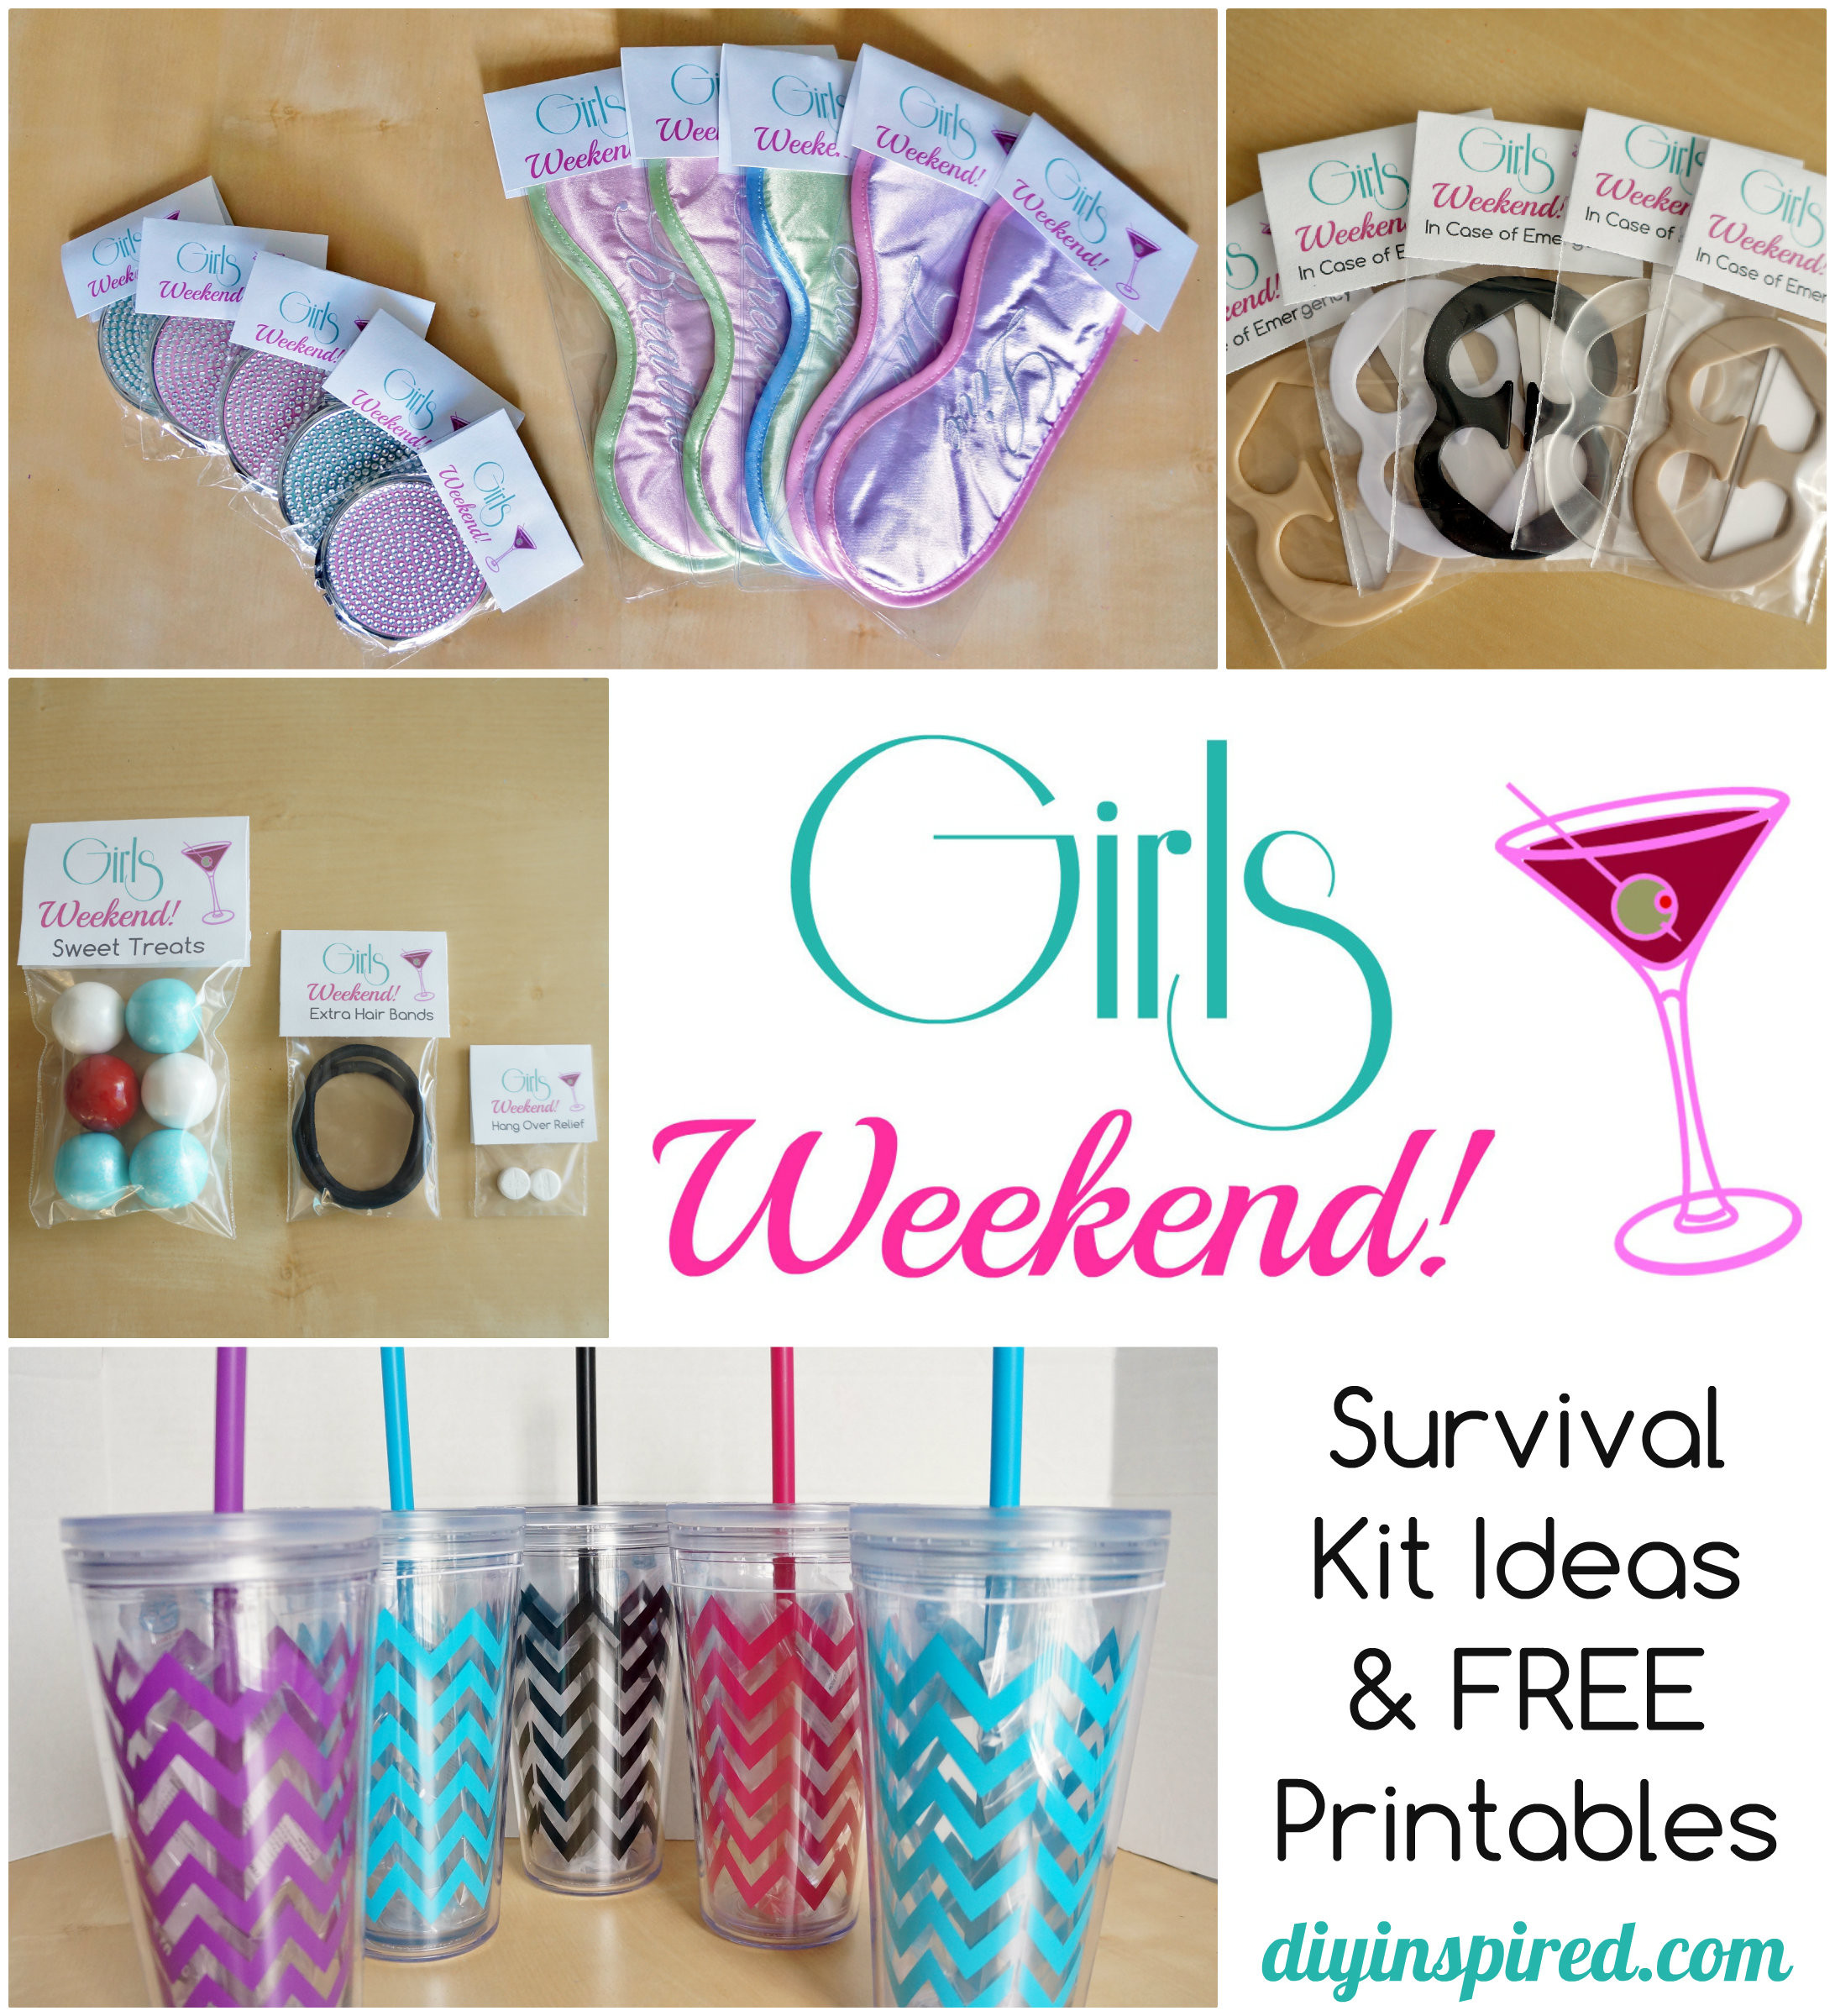 Gift Ideas For Girls Weekend  DIY Bachelorette Party Favor Ideas FREE Printable DIY